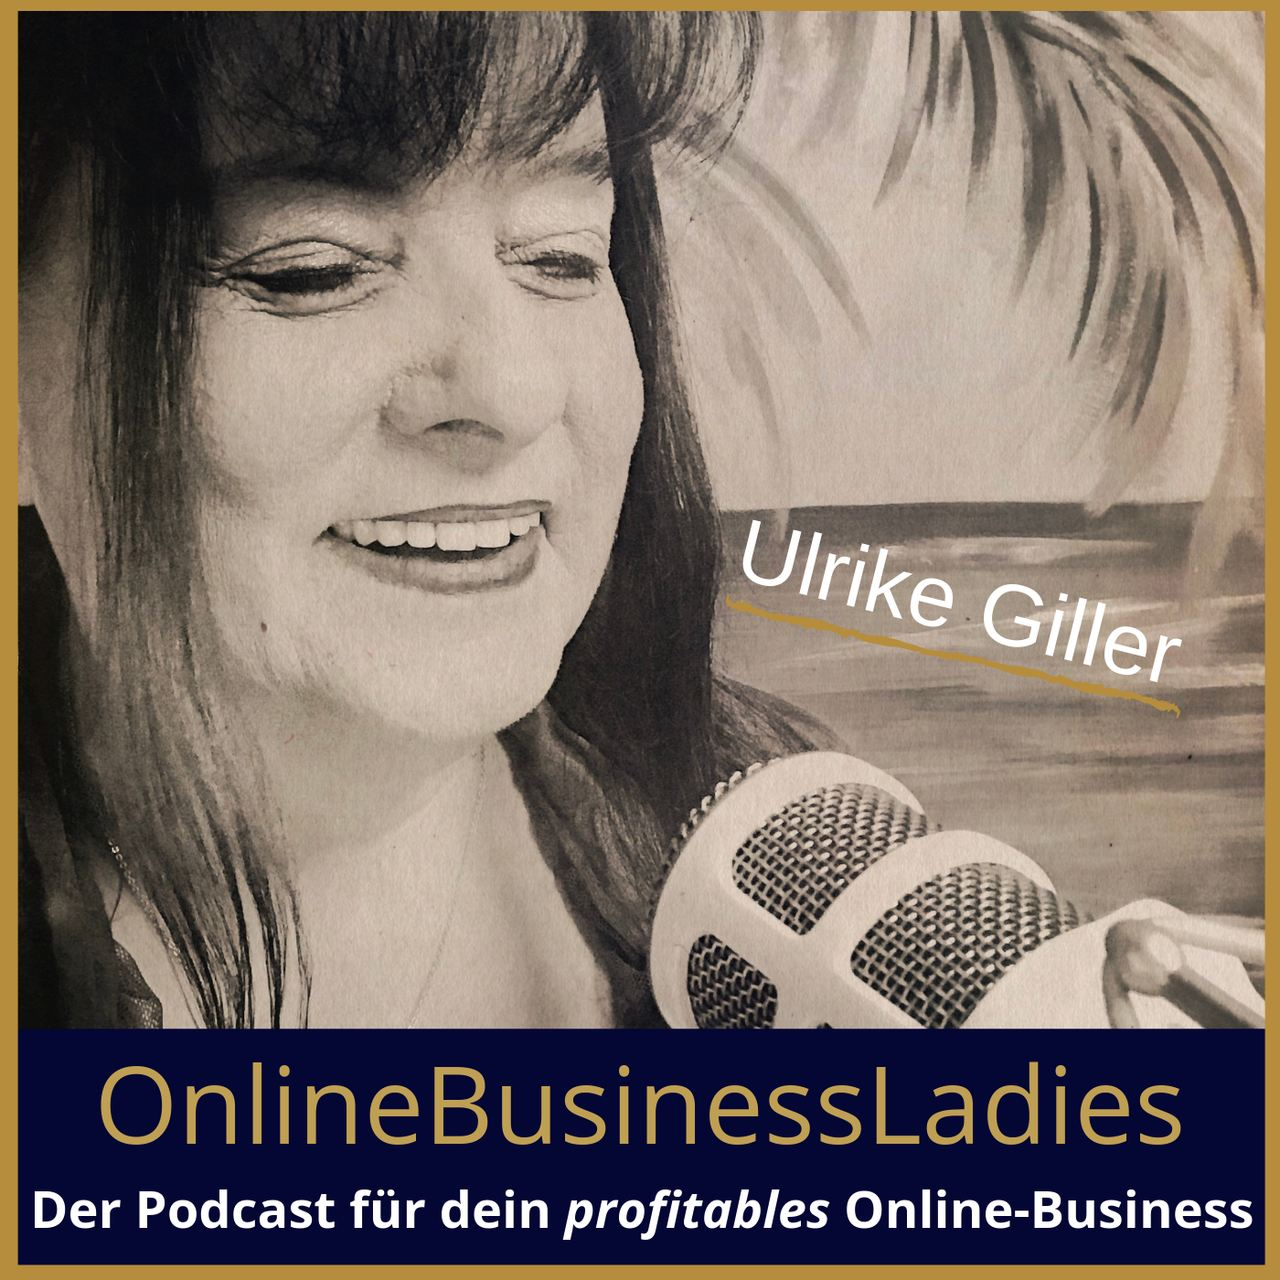 OnlineBusinessLadies